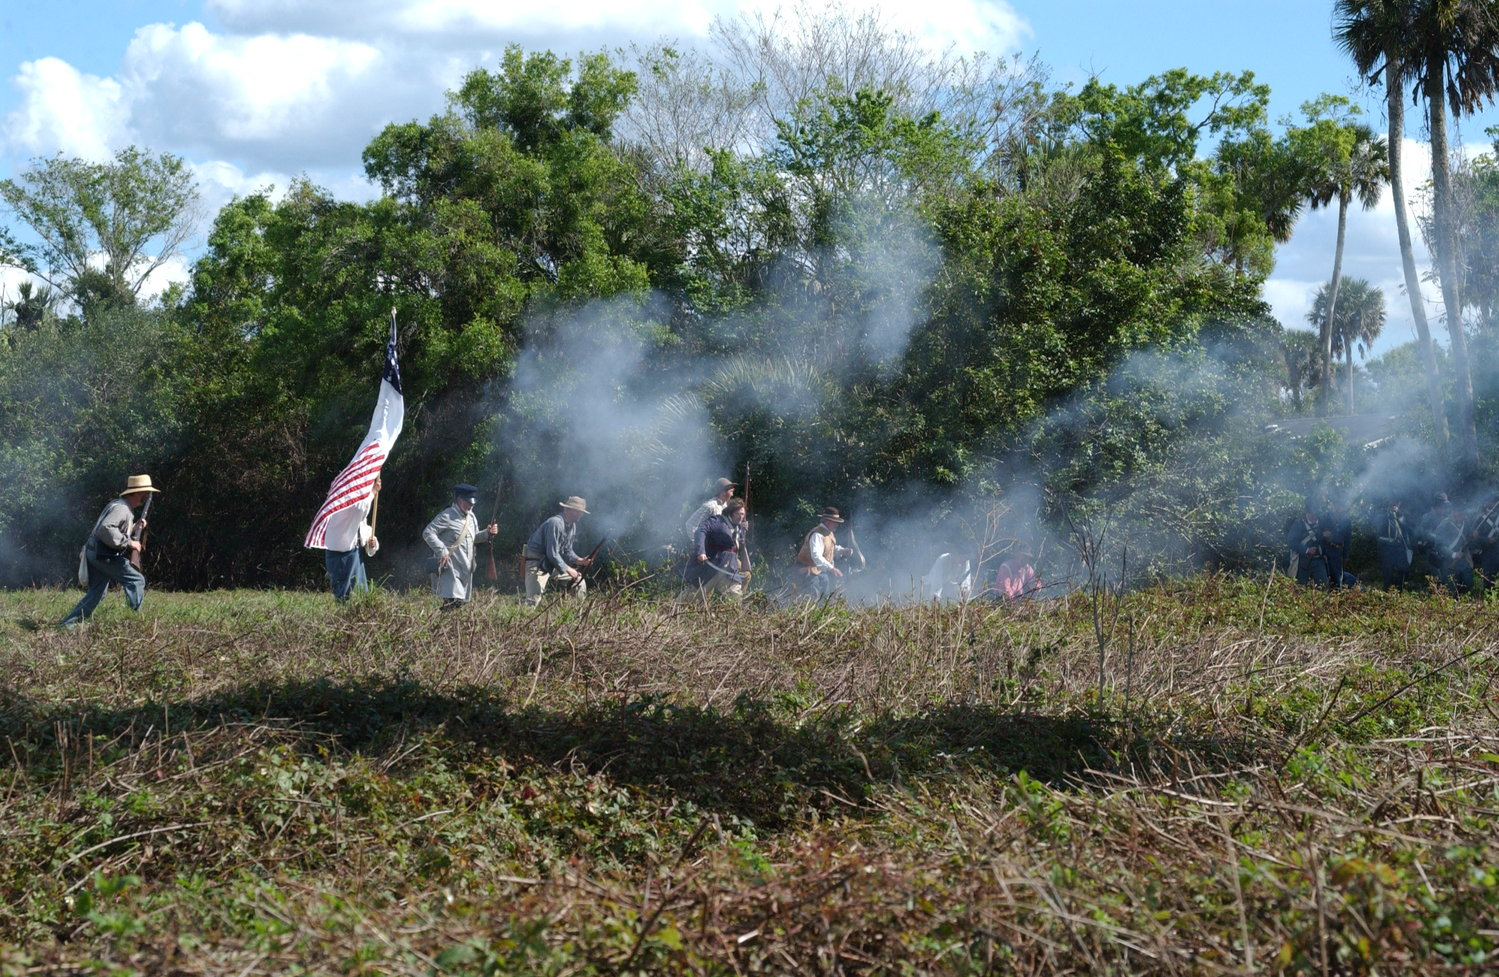 OKEECHOBEE — The Battle of Okeechobee Re-enactment, traditionally held each year in February at the Okeechobee Battlefield State Park, has been canceled for 2021 due to concerns about the spread of the COVID-19 virus and limits on crowds at the park.